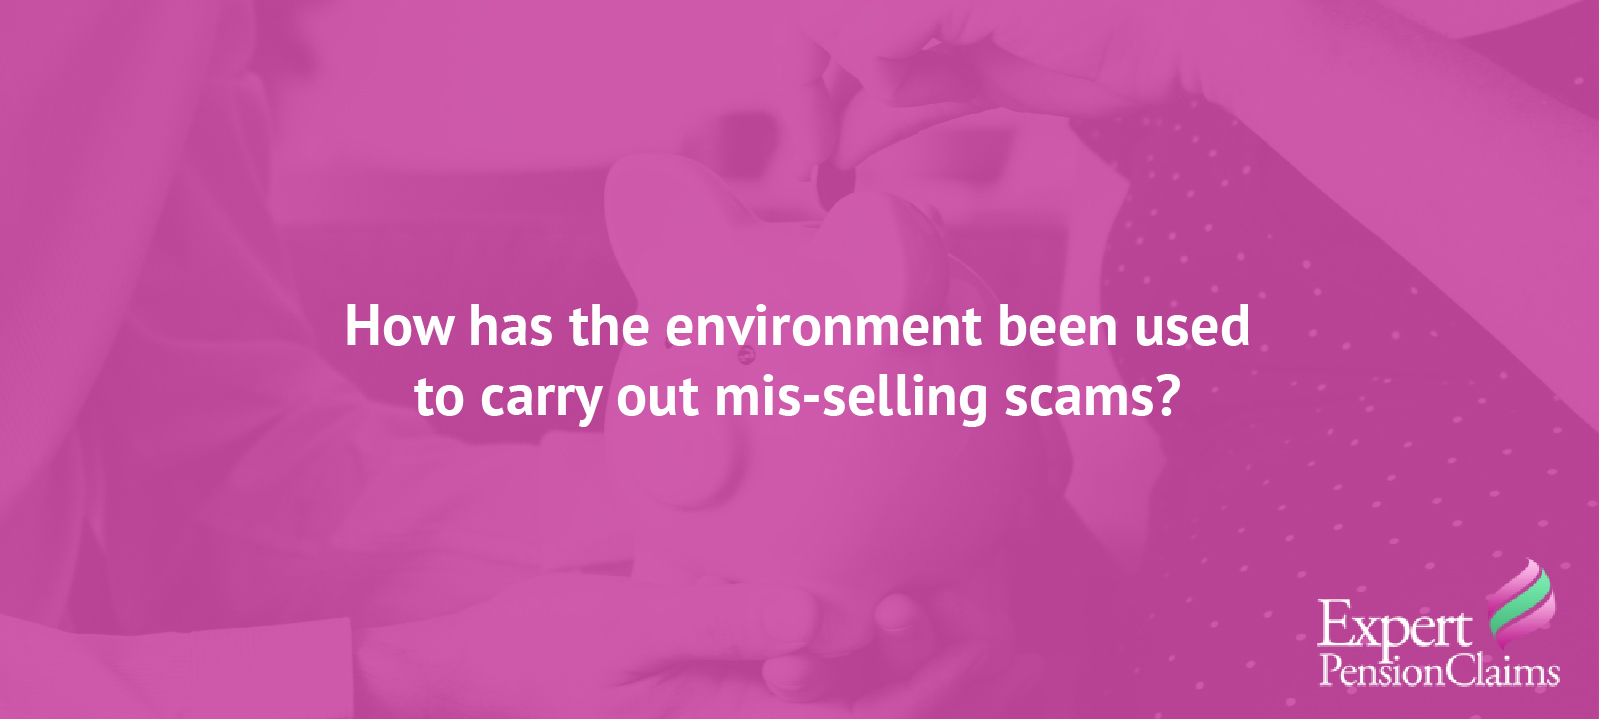 How has the environment has been used as part of mis-selling scams?